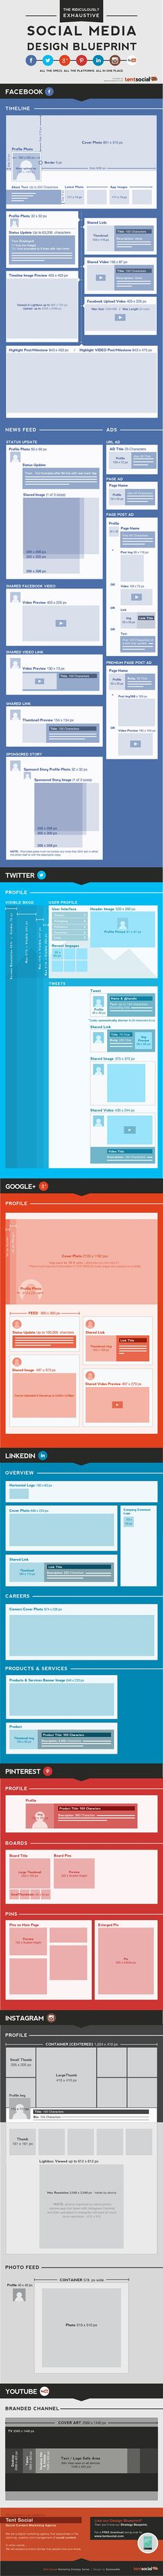 Social Media Design Blueprint Infographic | via #BornToBeSocial - Pinterest Marketing